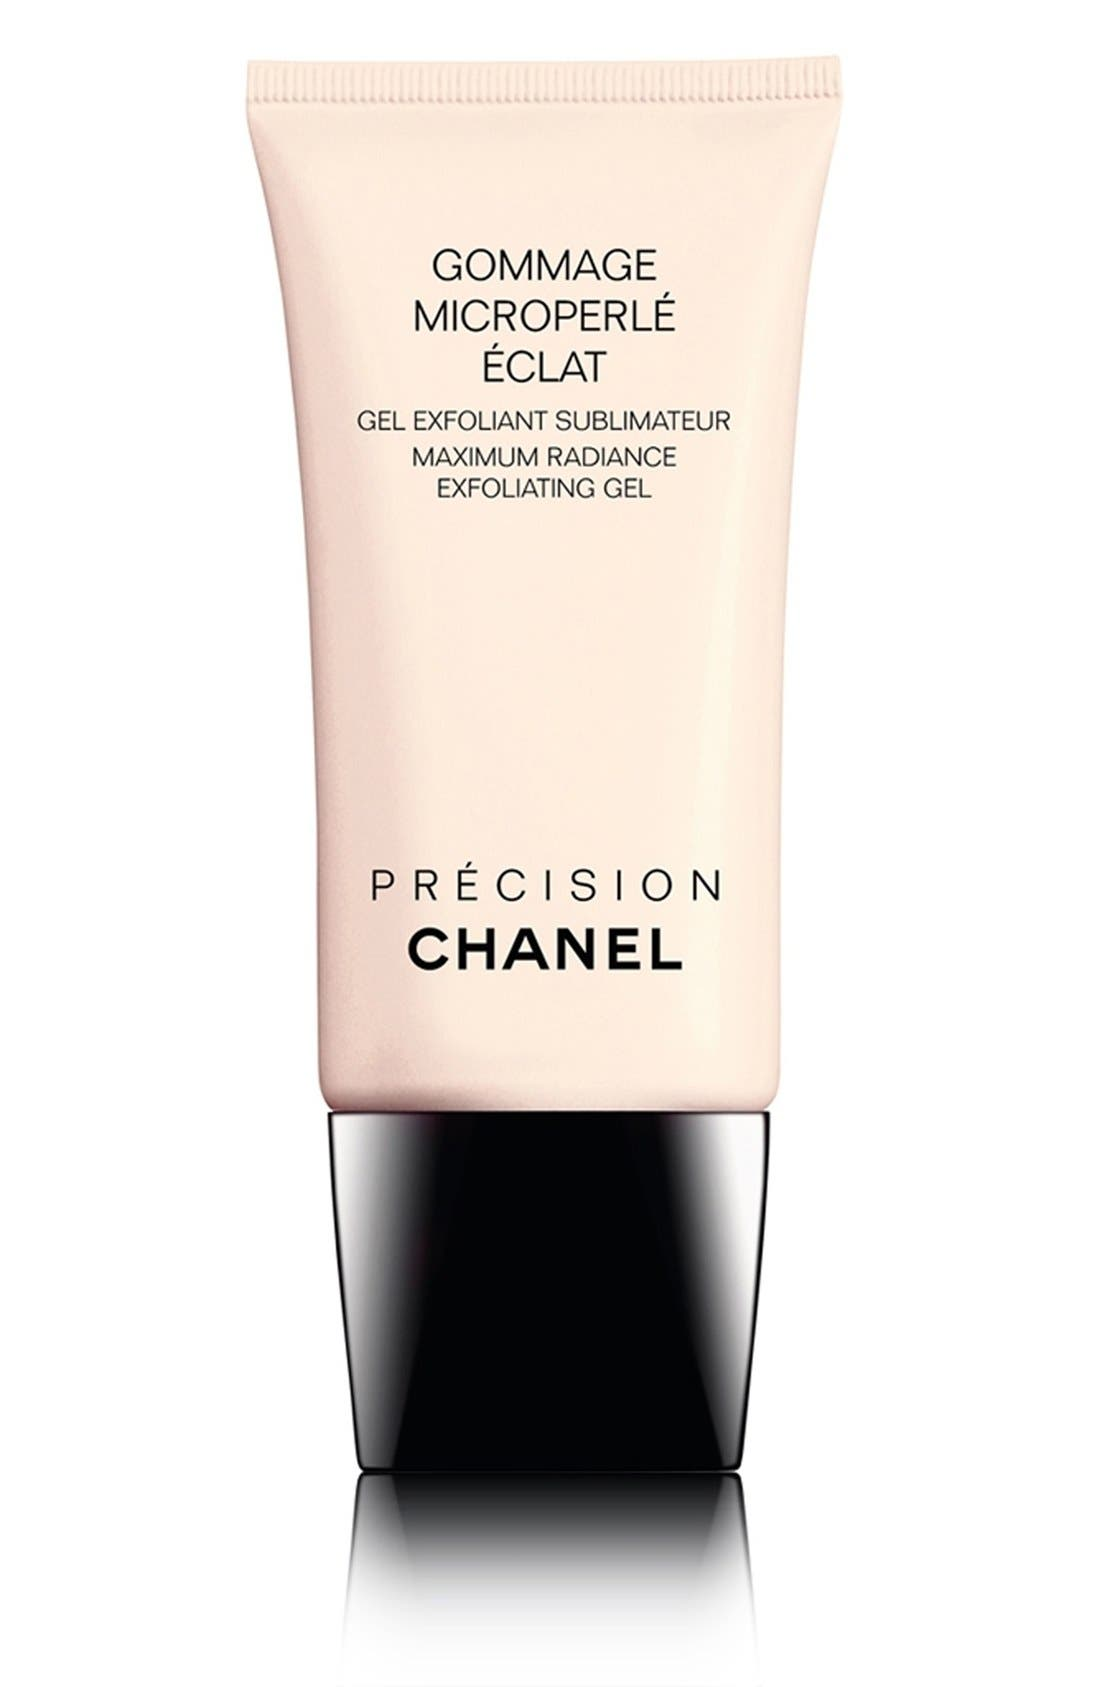 CHANEL GOMMAGE MICROPERLÉ ÉCLAT 